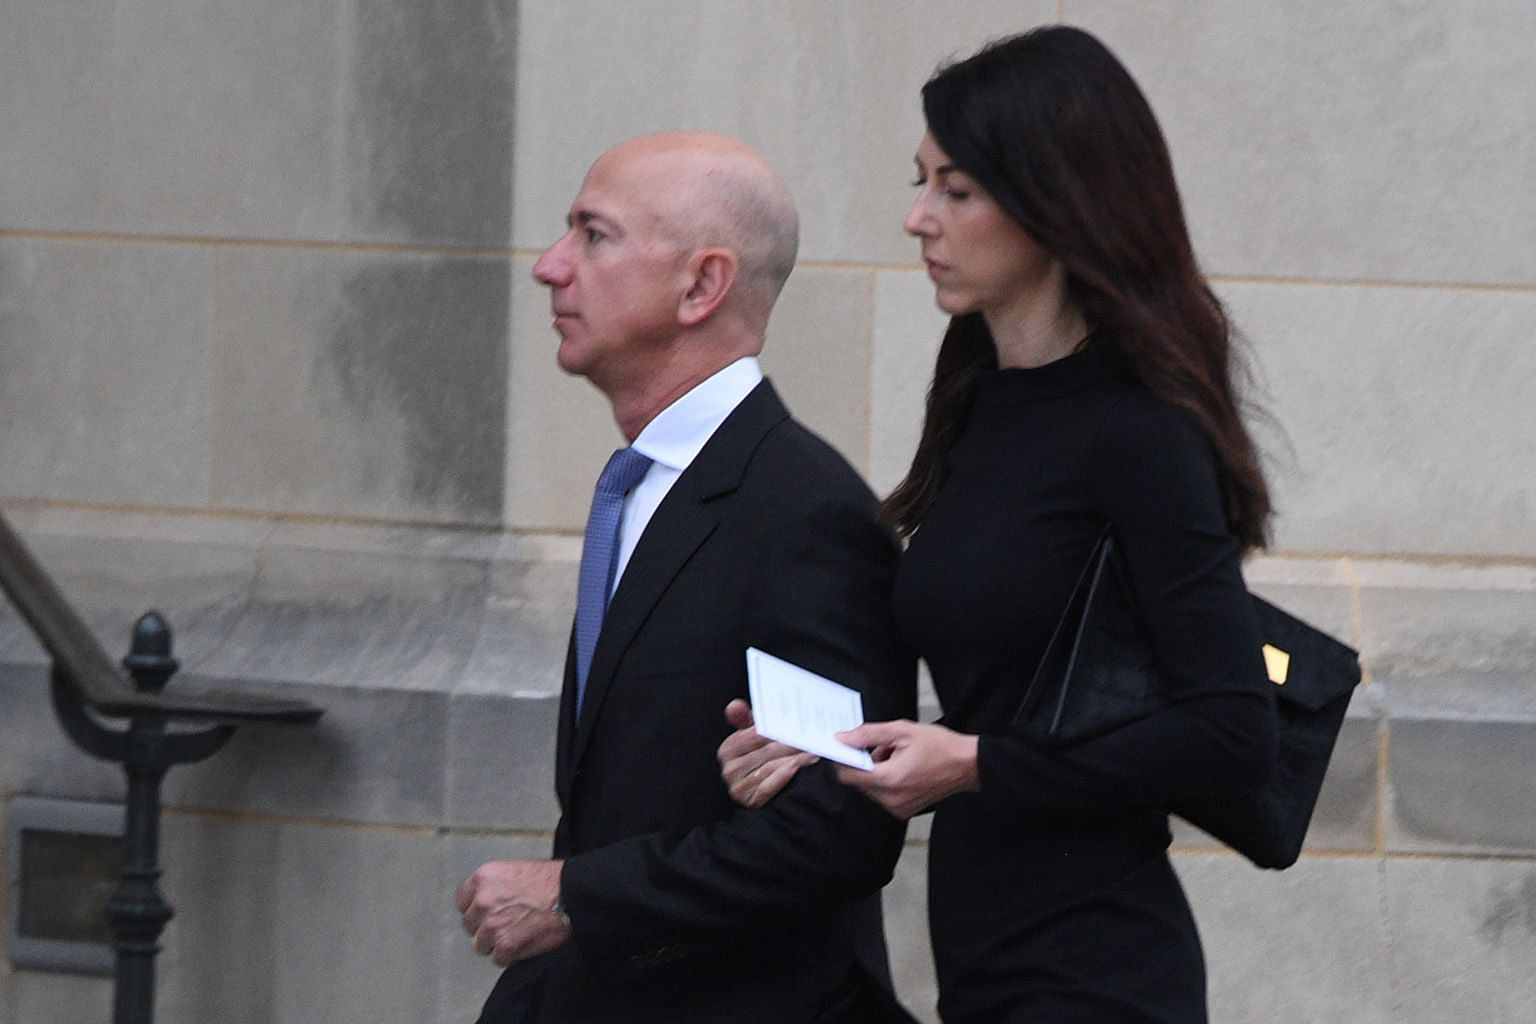 Mr Jeff Bezos and his wife, MacKenzie, announced their separation in January.